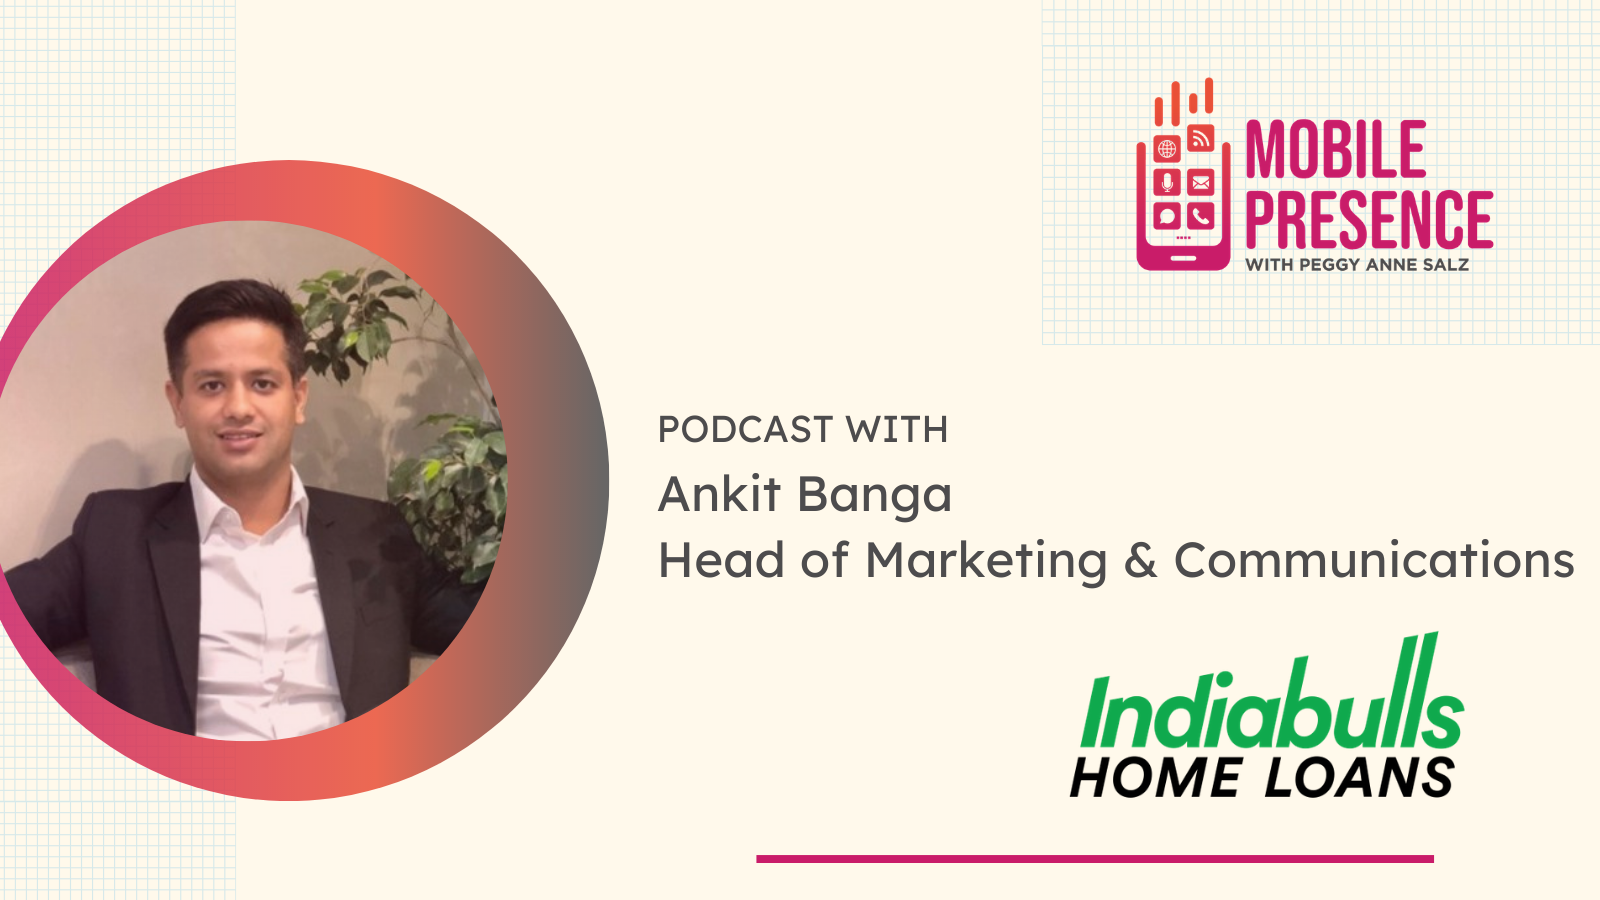 How Indiabulls Captures Massive Audience Attention With A Multi-Medium Approach Messaging